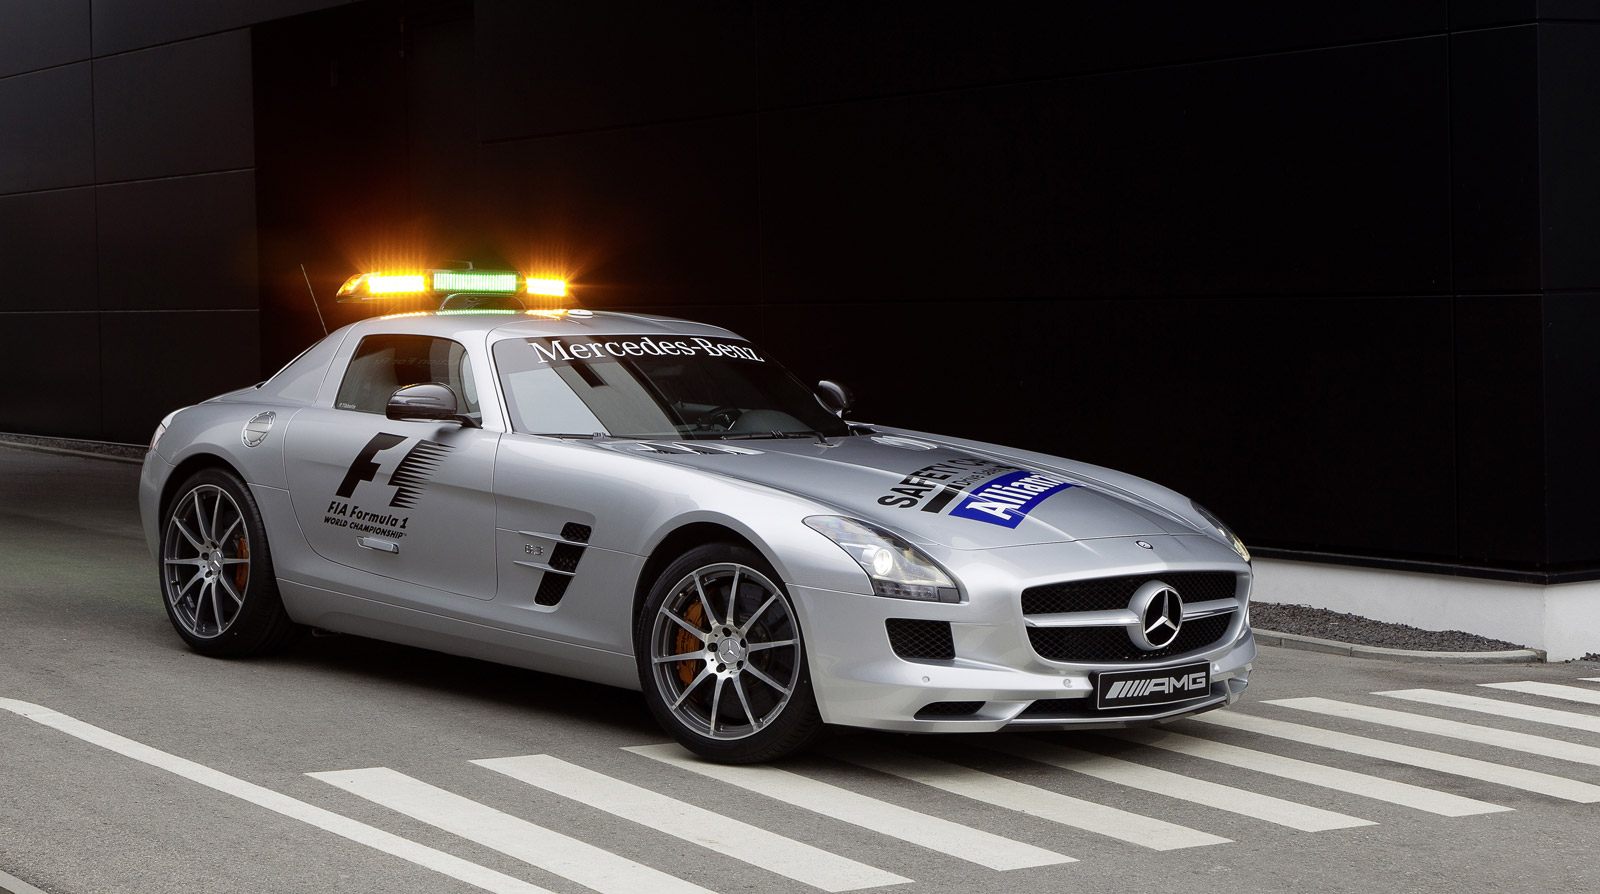 Mercedes Benz Sls Amg And C63 Amg Back On F1 Safety Duty